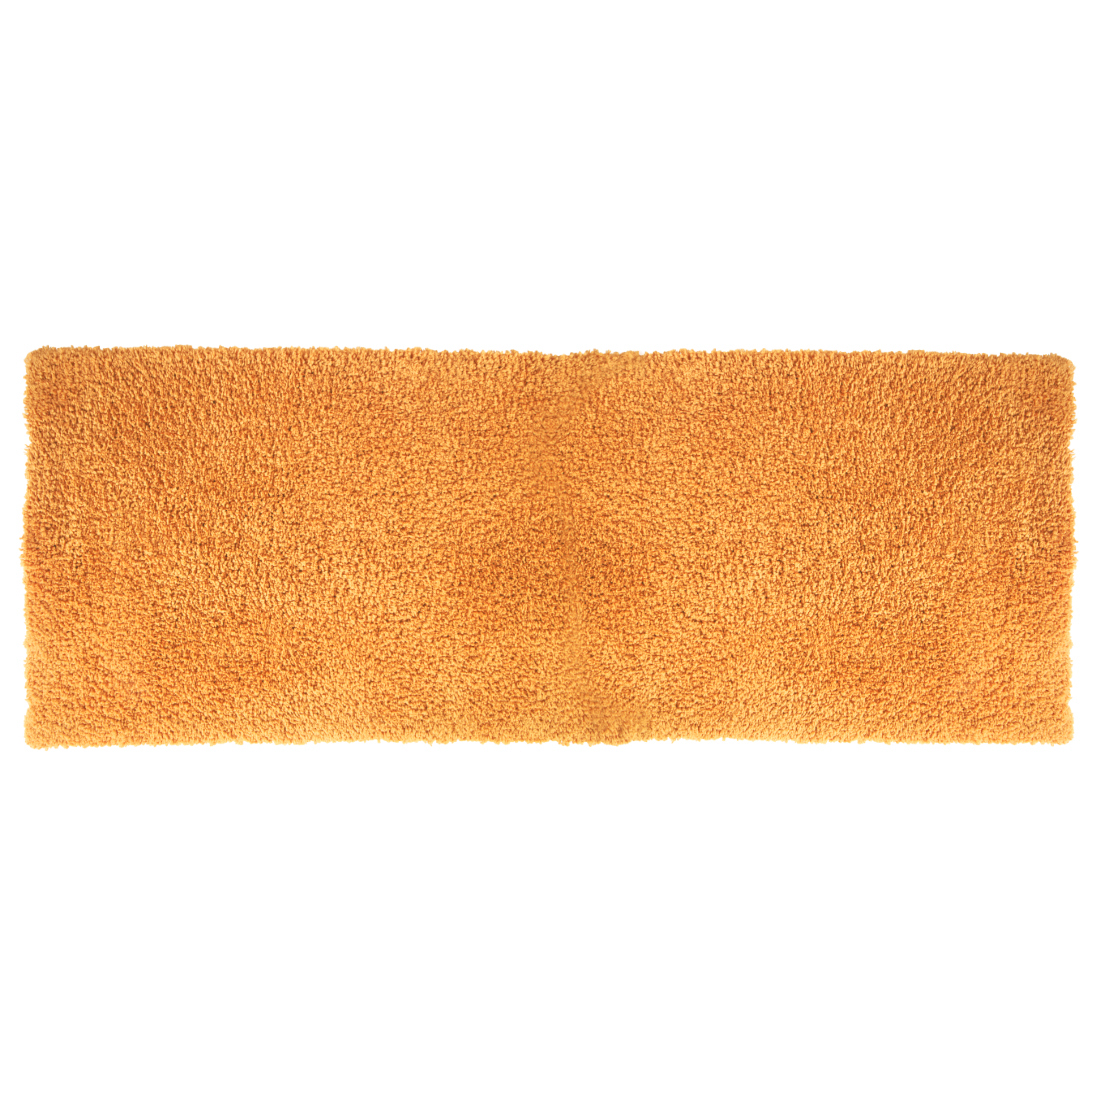 Nora Chenille Bath Mats in Mustard Colour by Living Essence